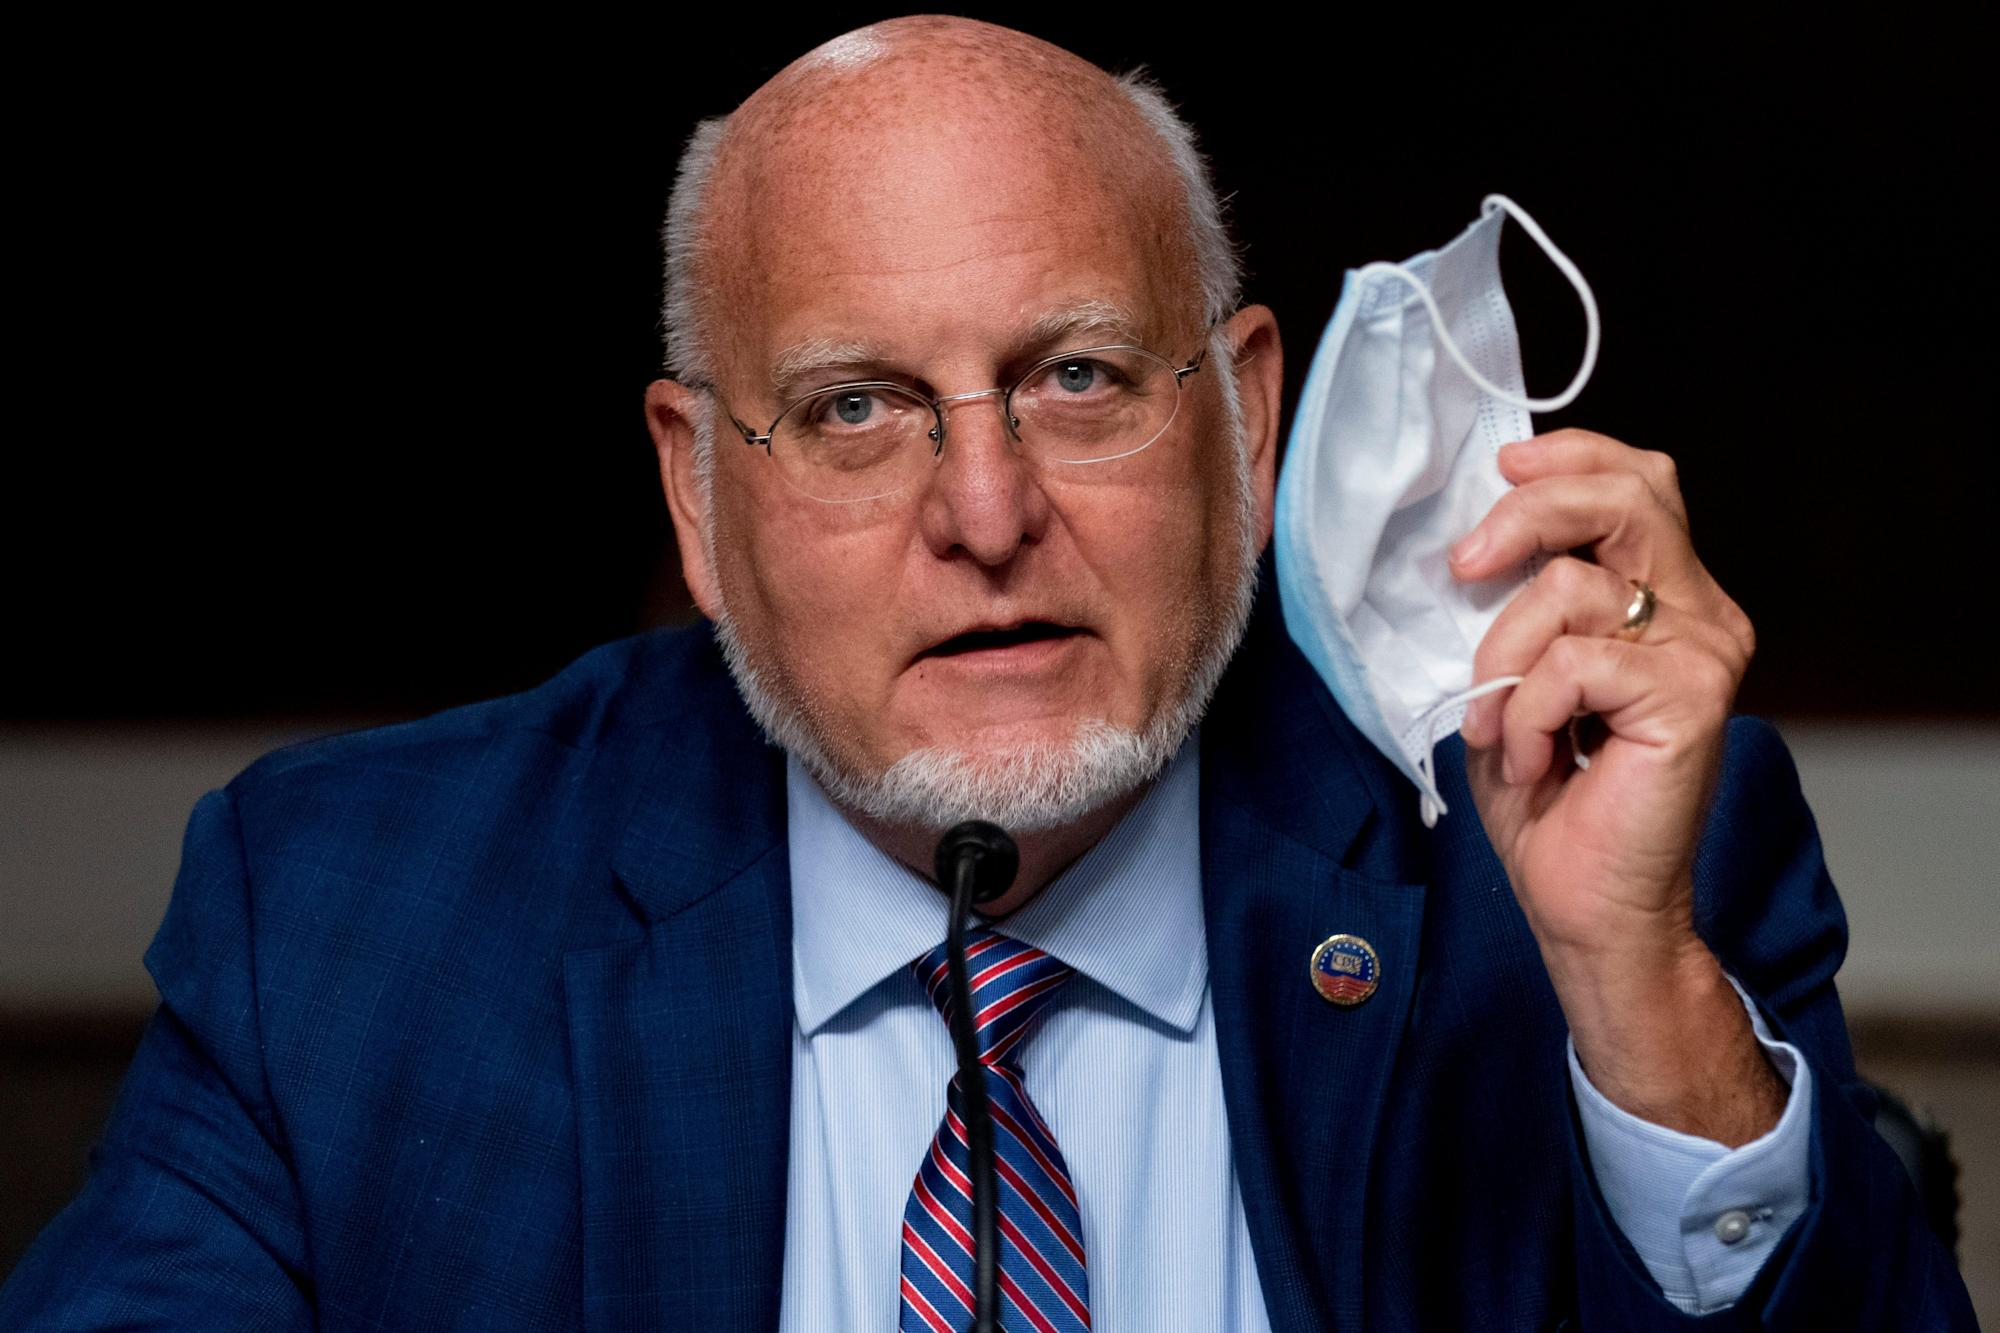 The CDC chief lost his way during COVID-19. Now his agency is in the balance.